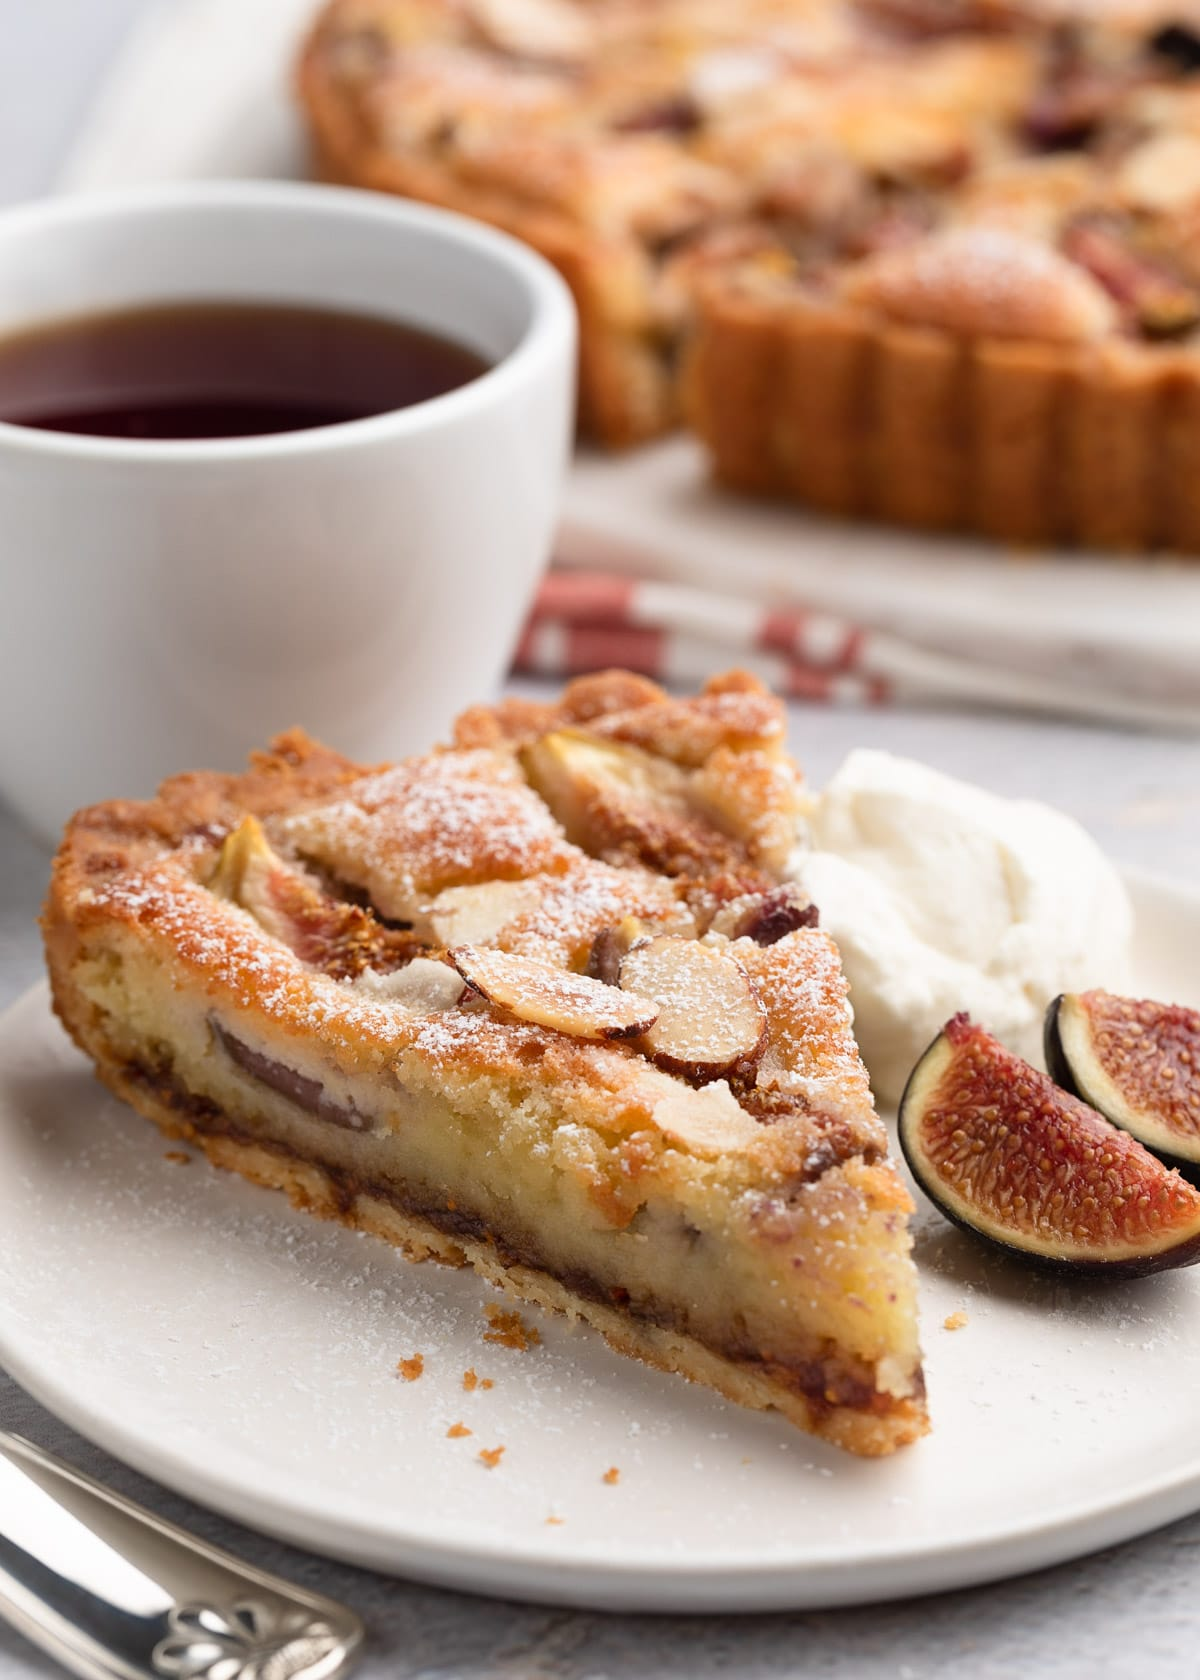 slice of fig and almond cream tart on a white plate with honey whipped cream and fresh sliced figs